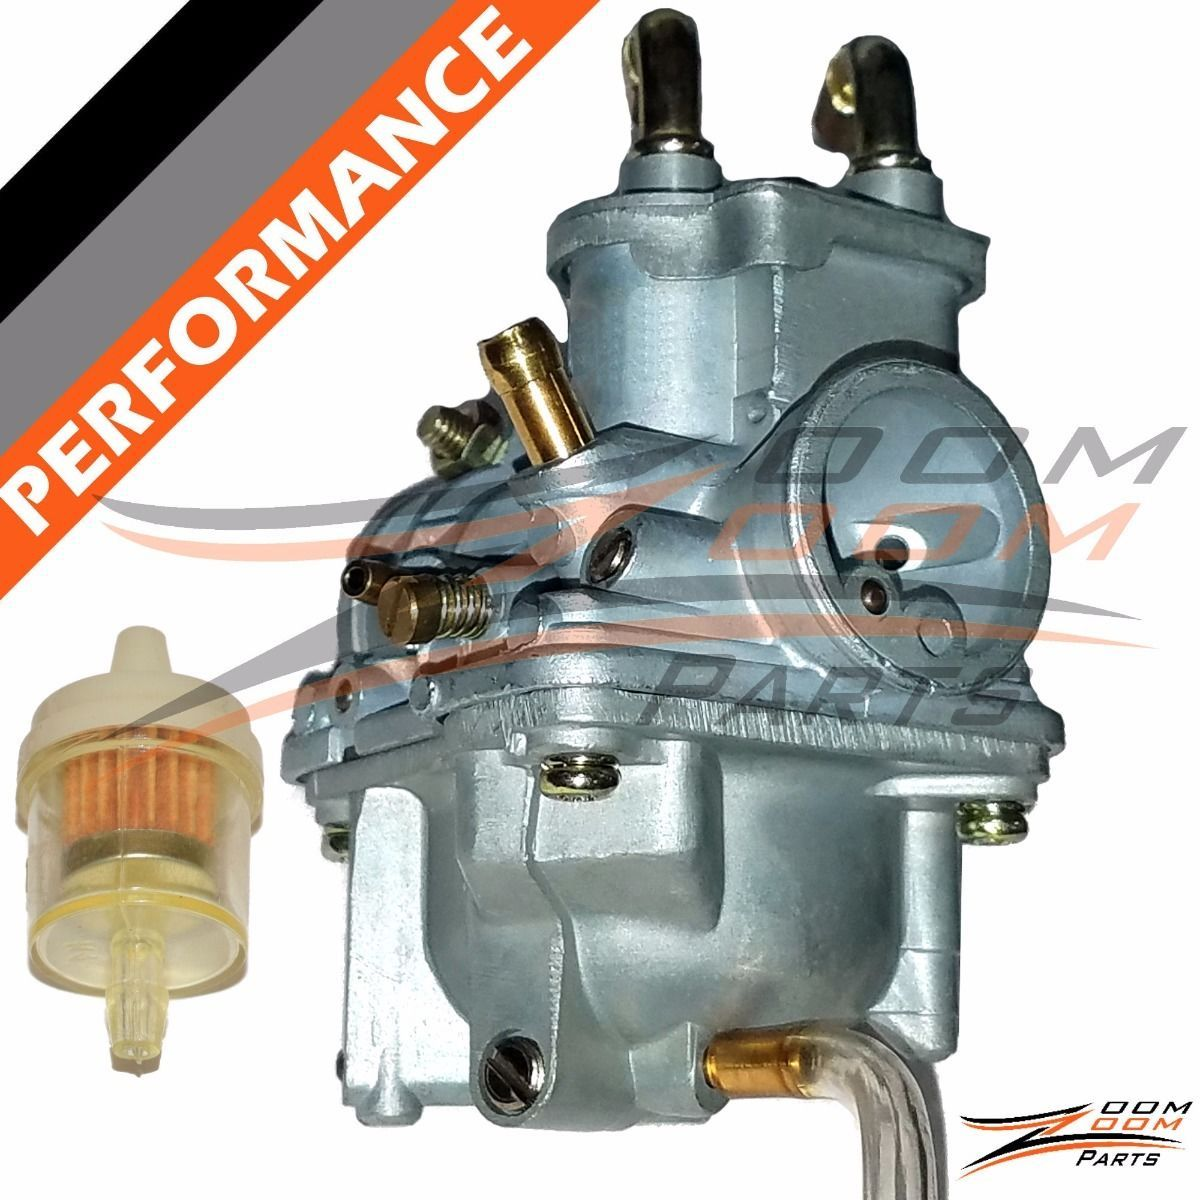 PERFORMANCE CARBURETOR YAMAHA PW 50 PW50 Y ZINGER YZINGER 1981-2010 CARB CARBY